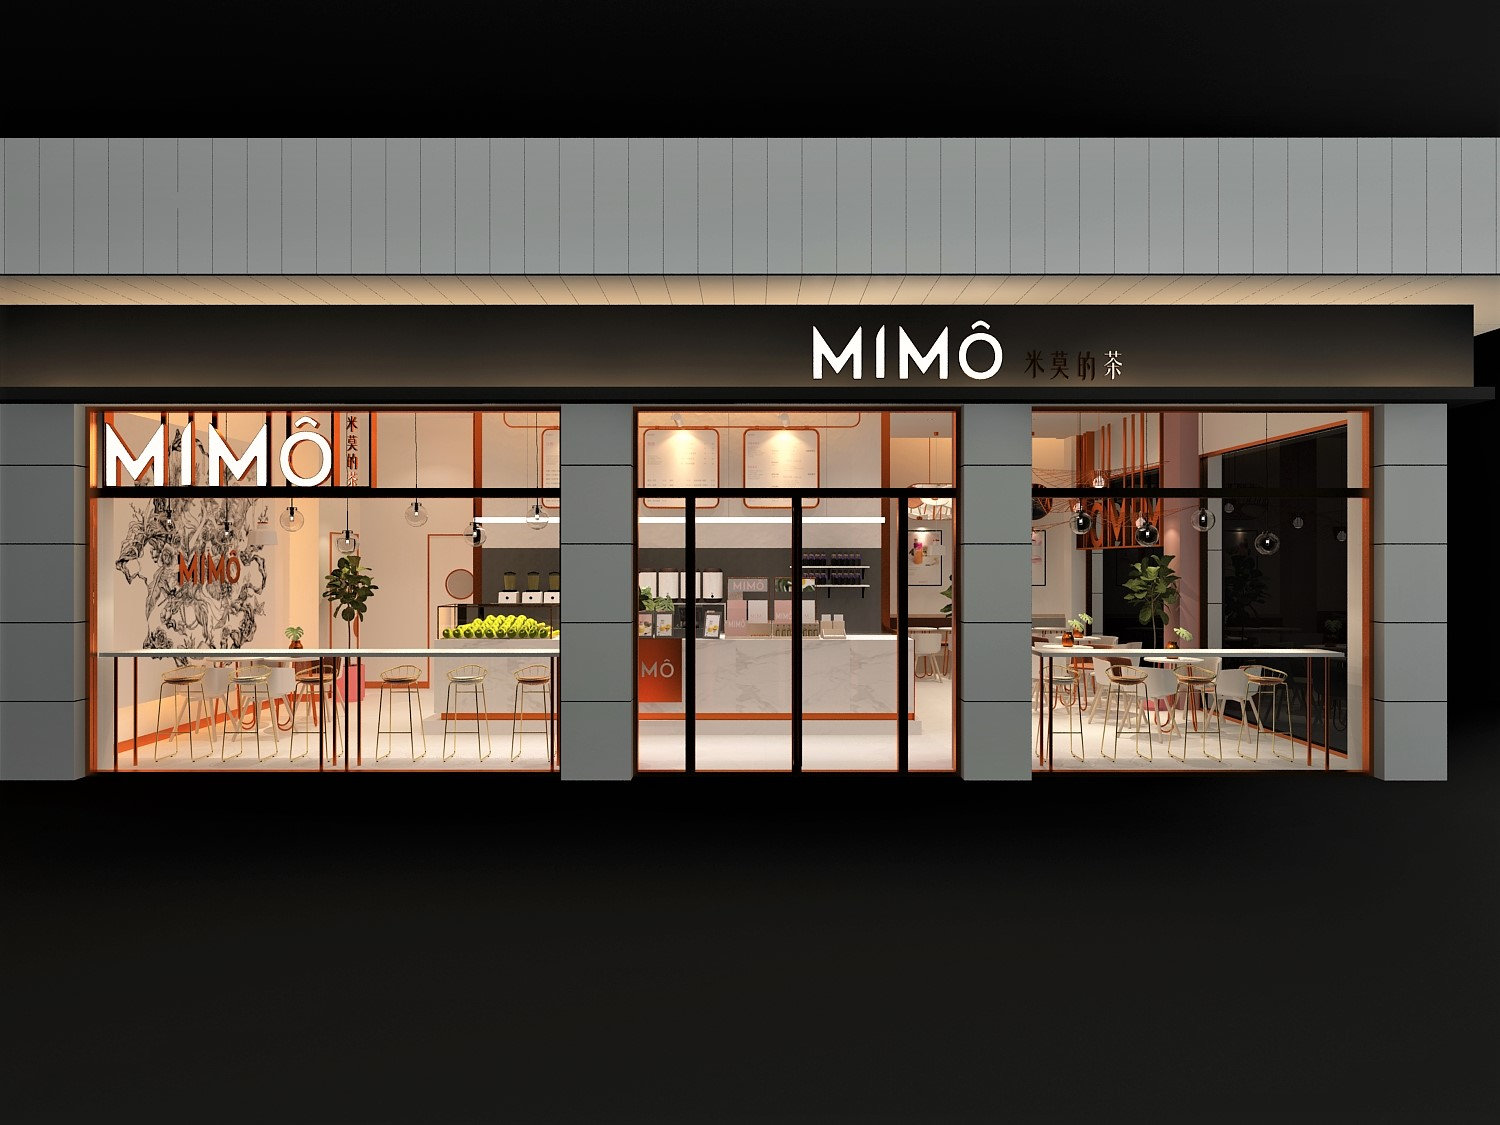 Mimo的茶